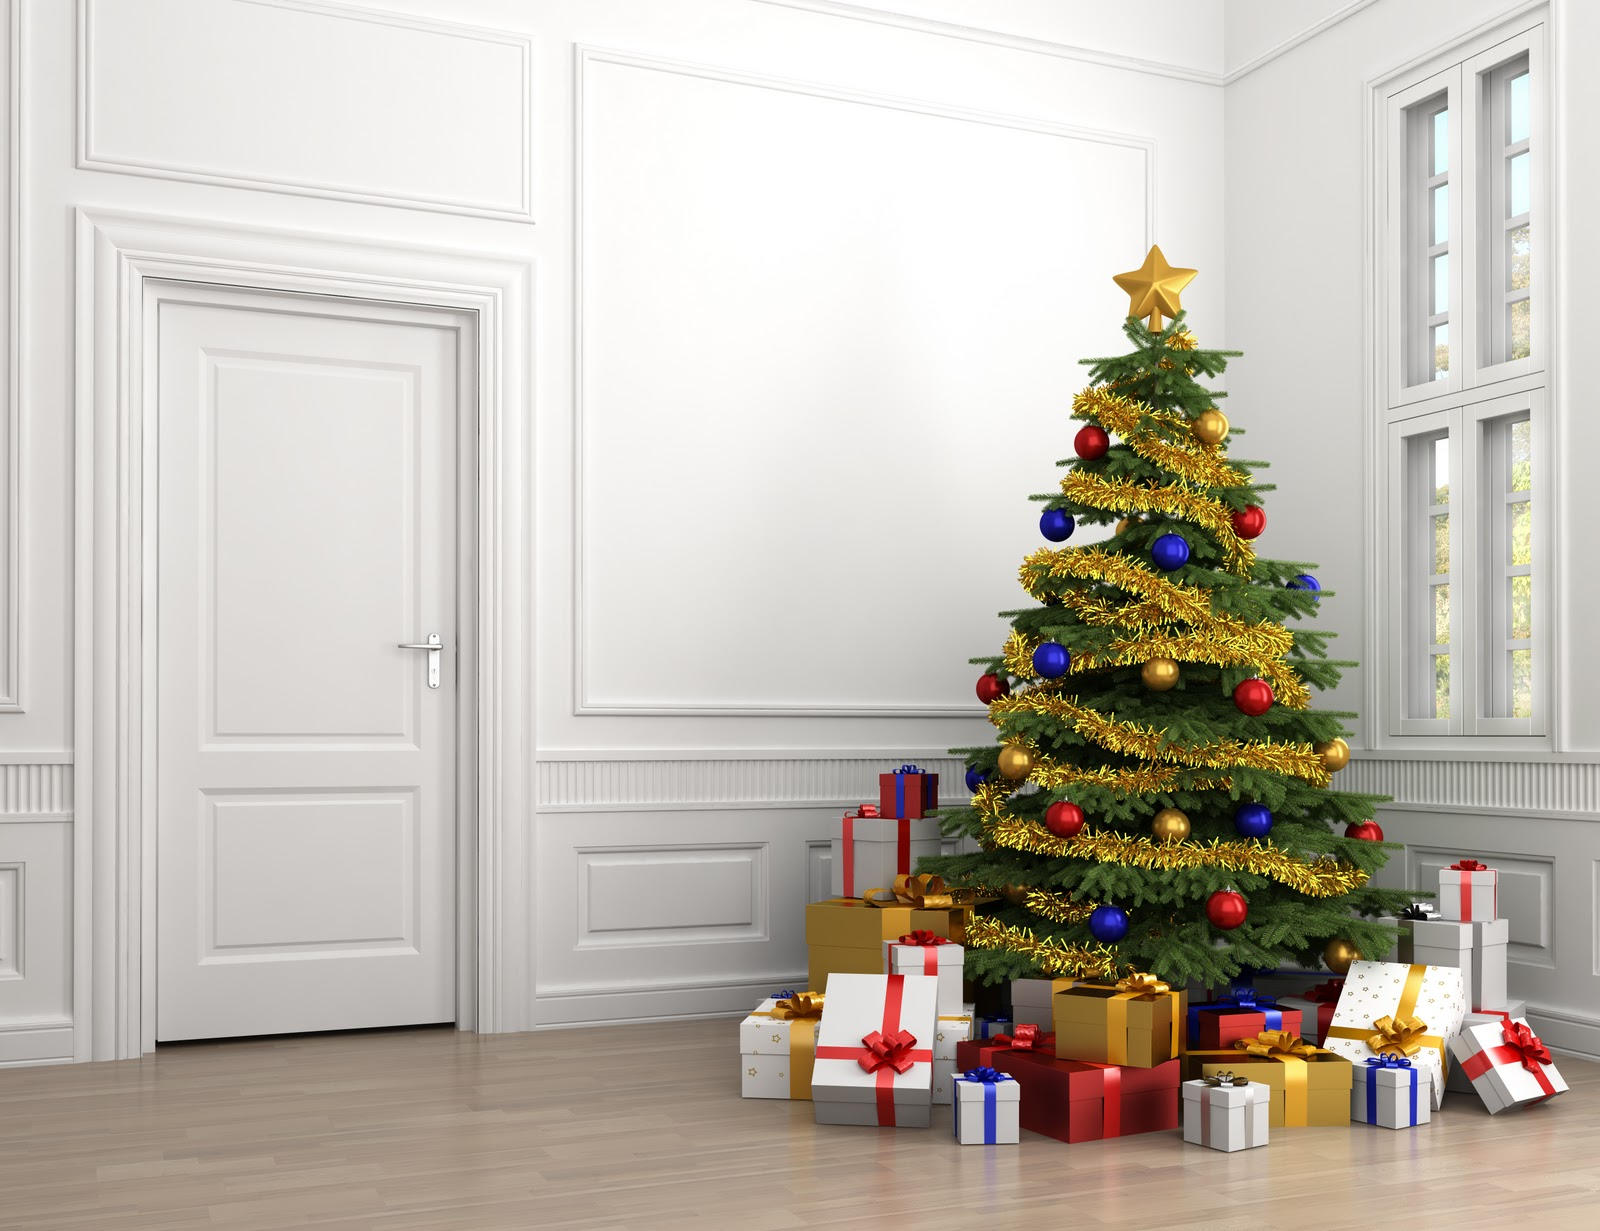 ... christmas tree images free, christmas pictures, christmas clip art